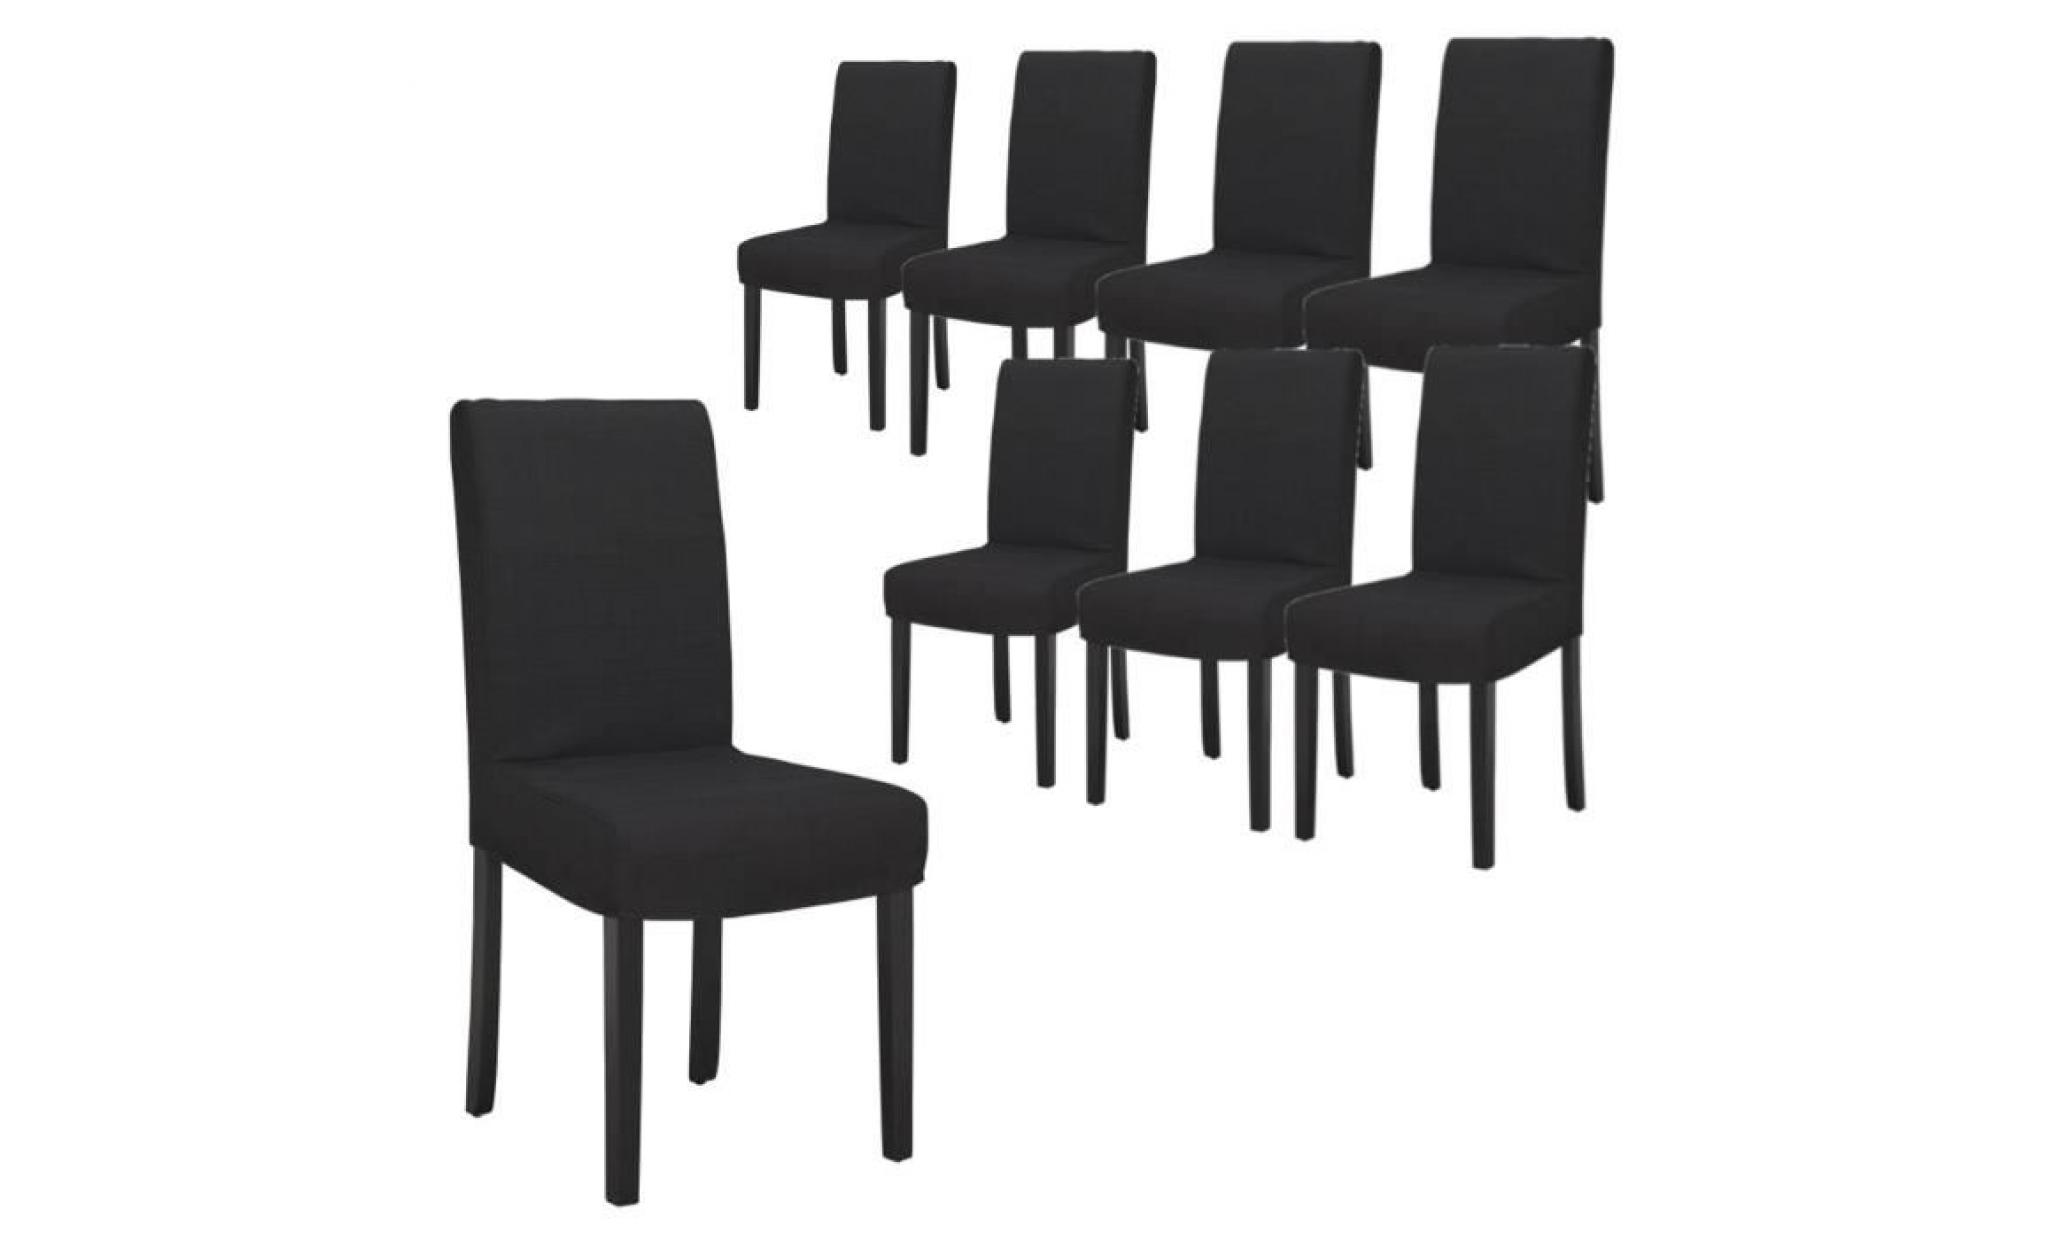 strip lot de 8 chaises de salle manger d houssables